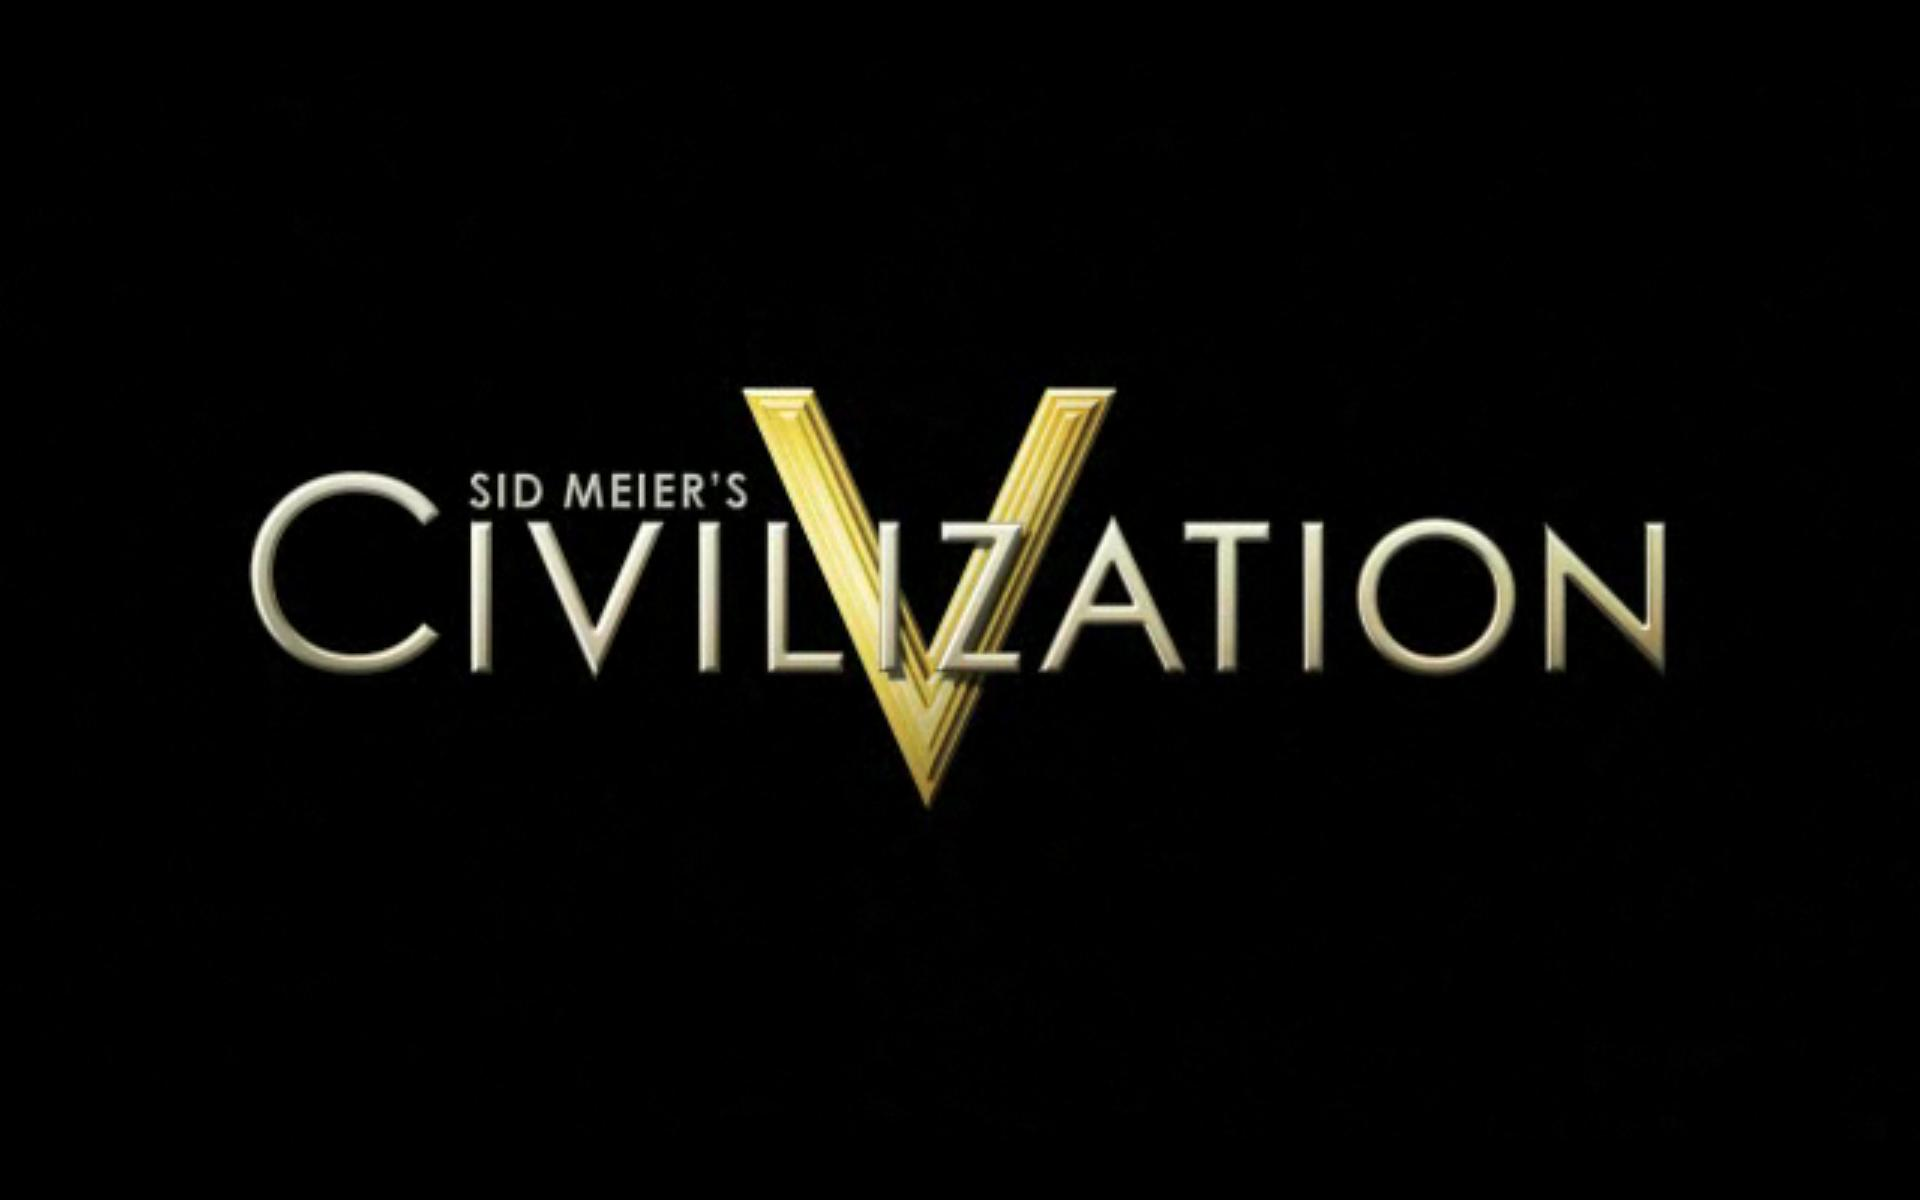 civilization V hedaer